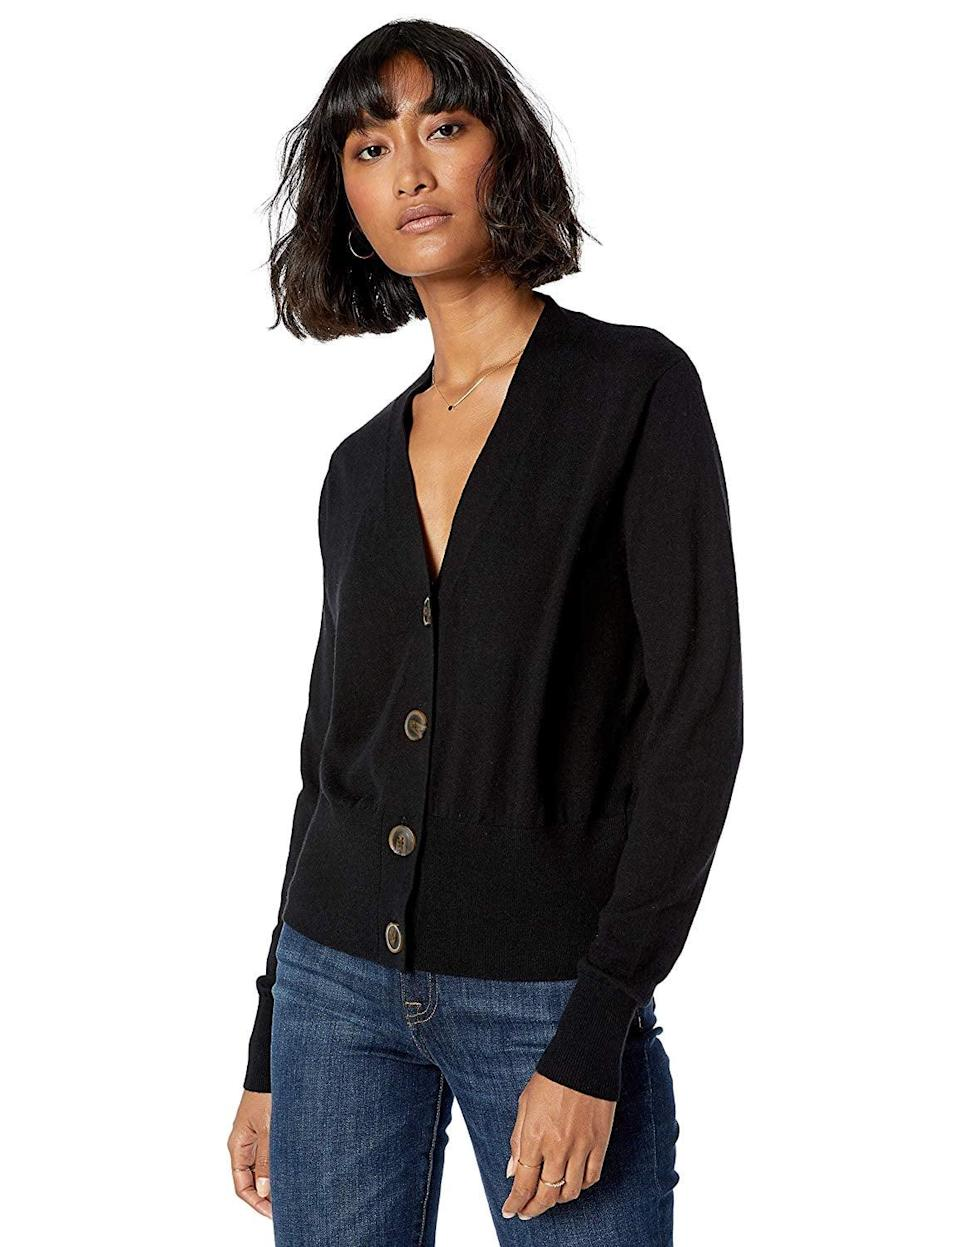 """<p>This <a href=""""https://www.popsugar.com/buy/Drop-Daniela-Boxy-V-Neck-Fine-Jersey-Cardigan-Sweater-506605?p_name=The%20Drop%20Daniela%20Boxy%20V-Neck%20Fine%20Jersey%20Cardigan%20Sweater&retailer=amazon.com&pid=506605&price=45&evar1=fab%3Aus&evar9=46804763&evar98=https%3A%2F%2Fwww.popsugar.com%2Ffashion%2Fphoto-gallery%2F46804763%2Fimage%2F46804769%2FThis-Layering-Sweater&list1=shopping%2Cfall%20fashion%2Camazon%2Cfall&prop13=mobile&pdata=1"""" class=""""link rapid-noclick-resp"""" rel=""""nofollow noopener"""" target=""""_blank"""" data-ylk=""""slk:The Drop Daniela Boxy V-Neck Fine Jersey Cardigan Sweater"""">The Drop Daniela Boxy V-Neck Fine Jersey Cardigan Sweater</a> ($45) is the definition of a wardrobe staple.</p>"""